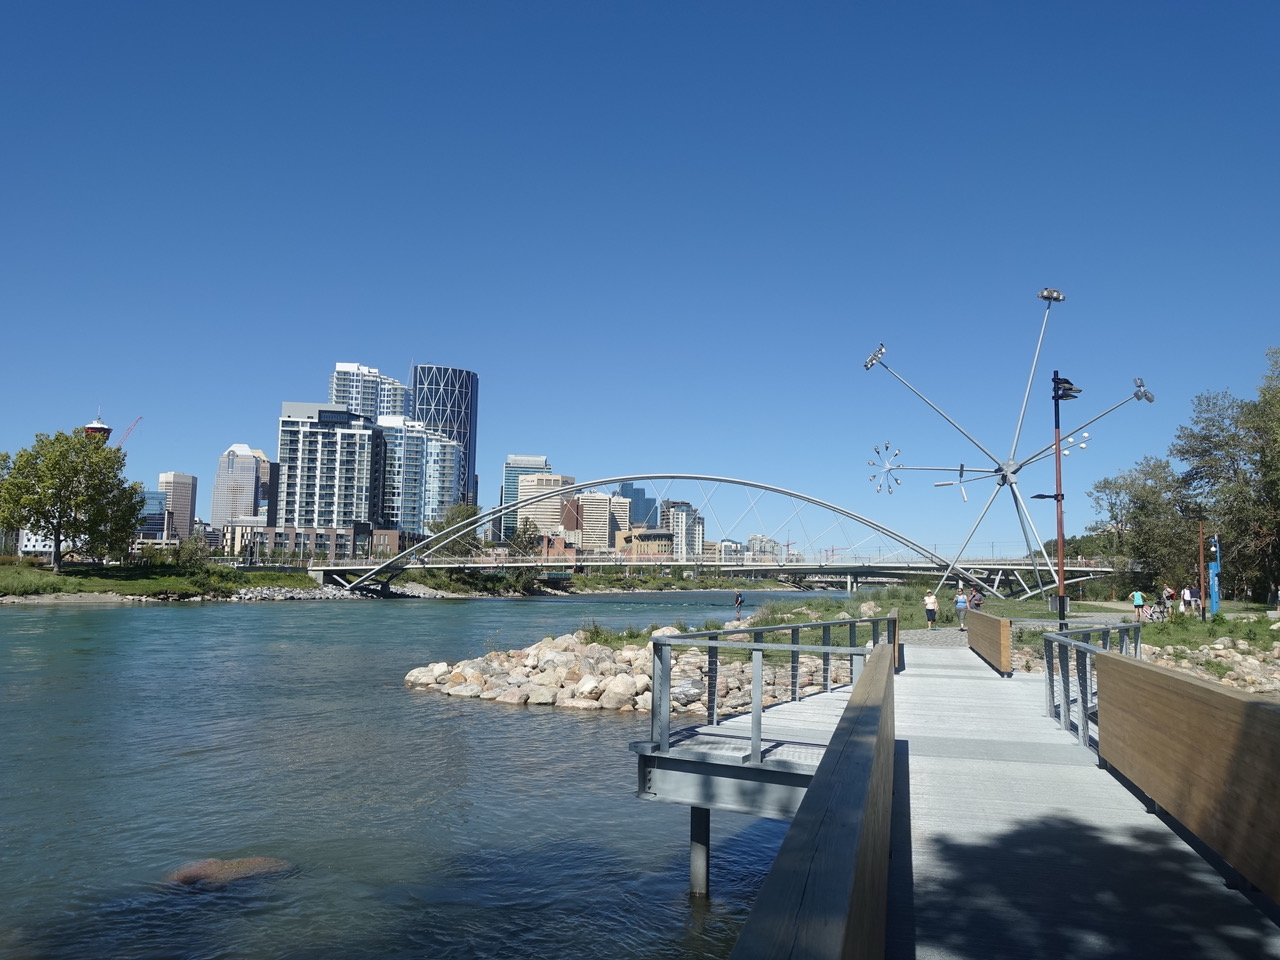 East Village's pathways along the Bow River in St. Patrick's Island Park with the George King bridge in the background.